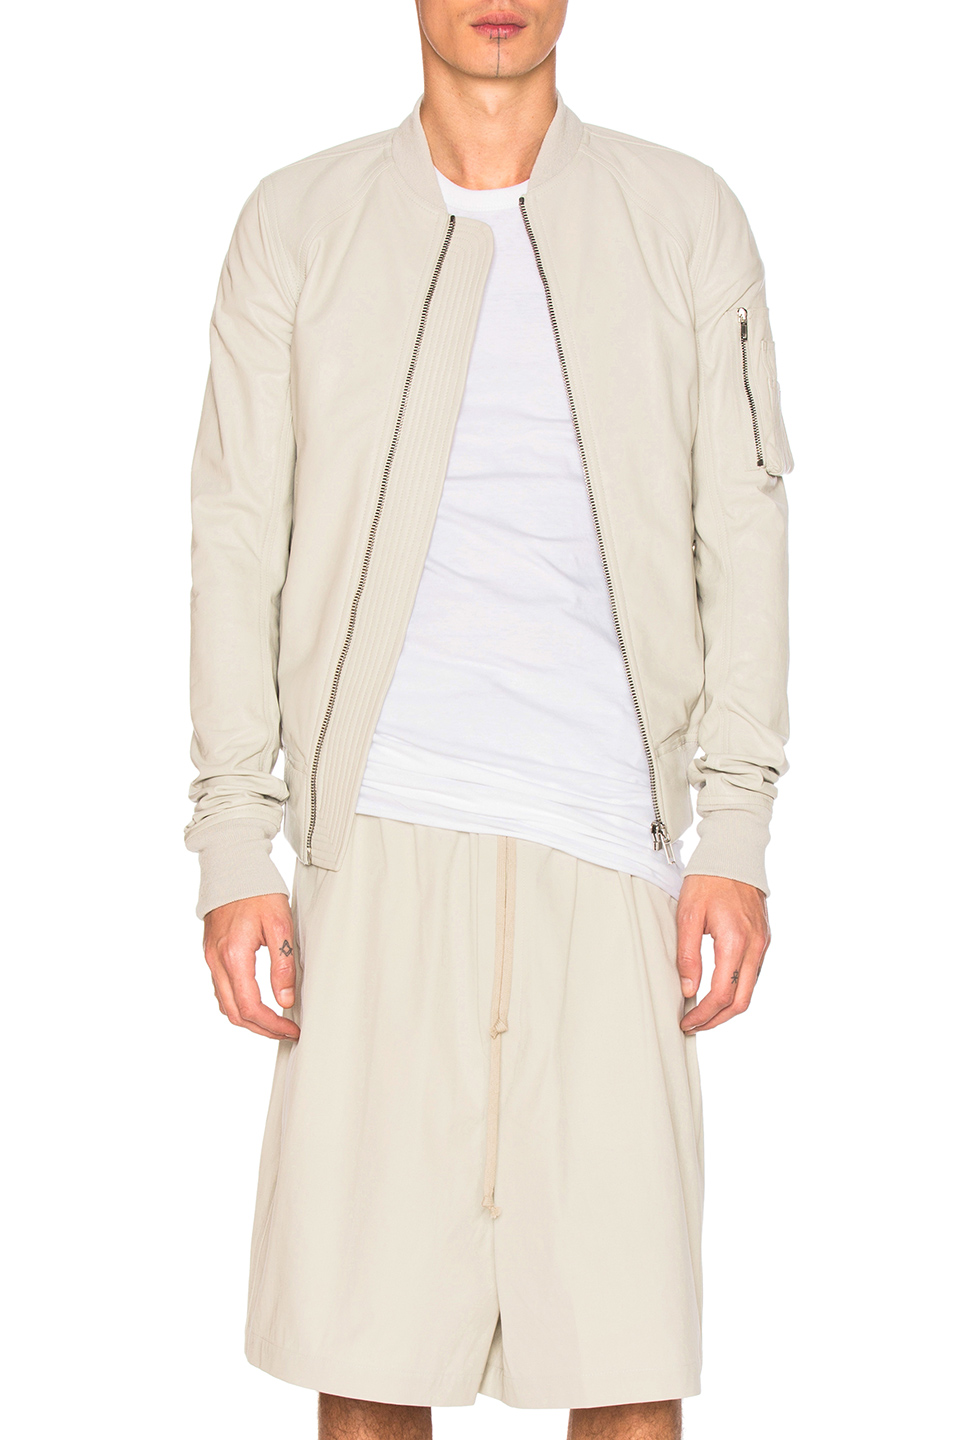 Rick Owens Raglan Leather Bomber Jacket in Neutrals,White